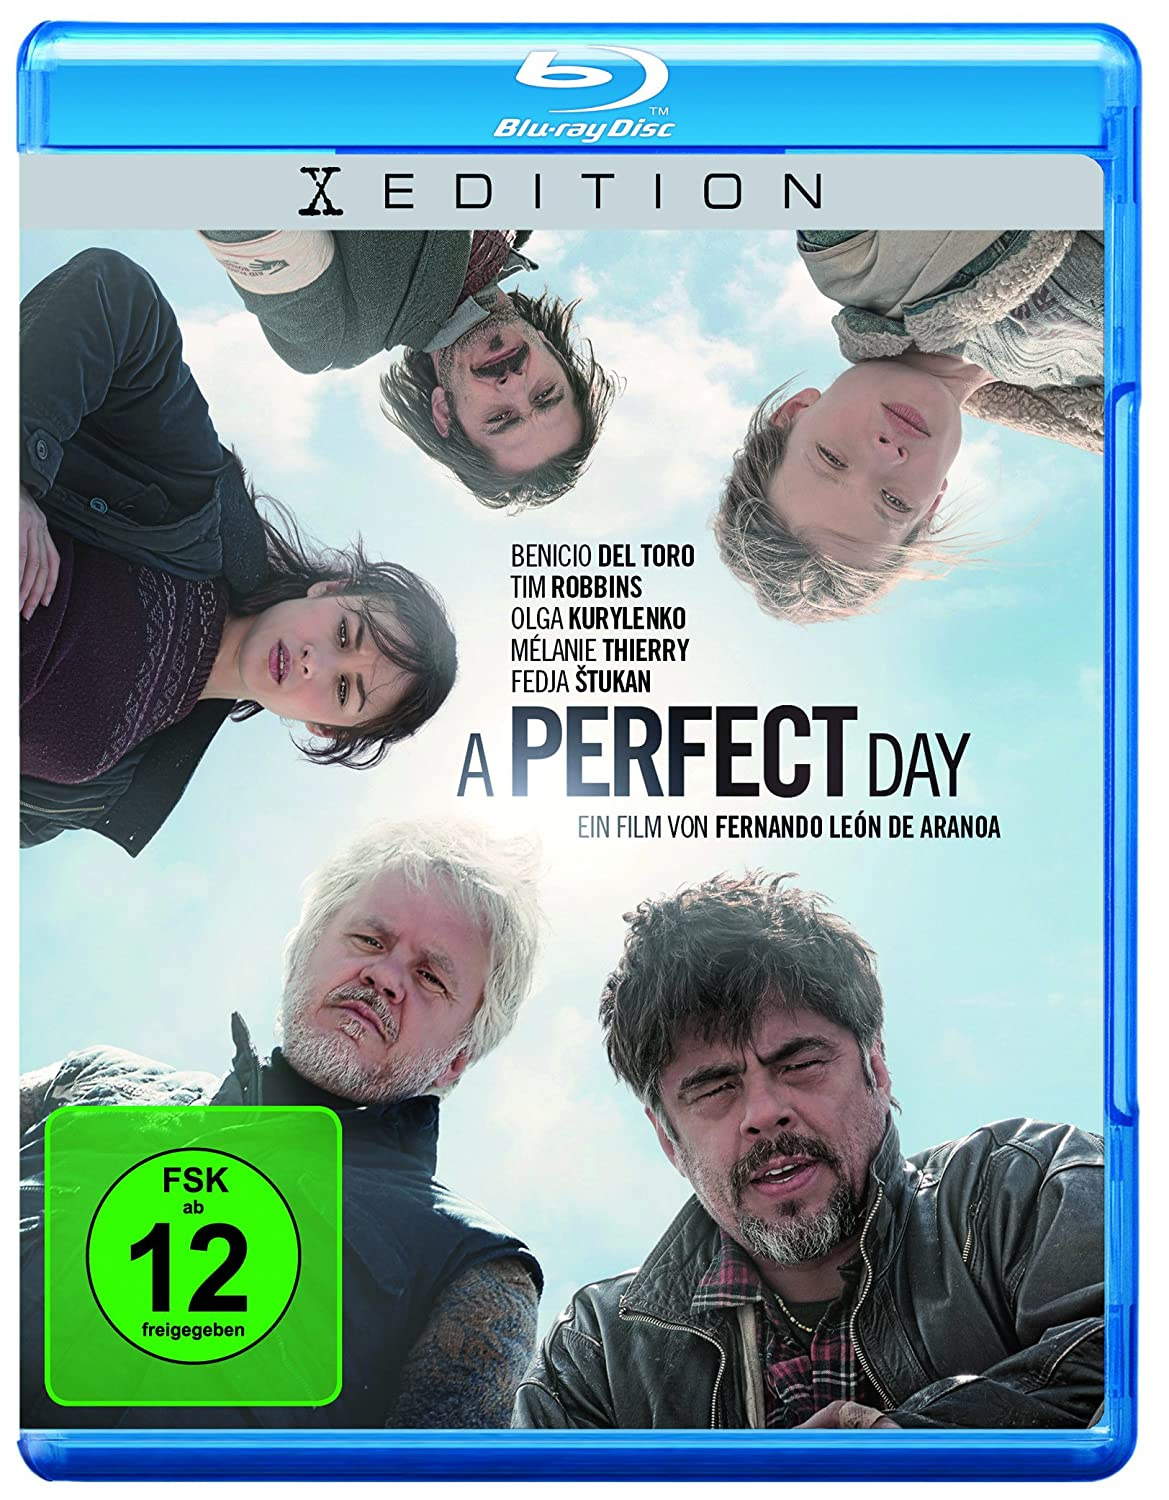 Film Geheimtipps - A Perfect Day 2015